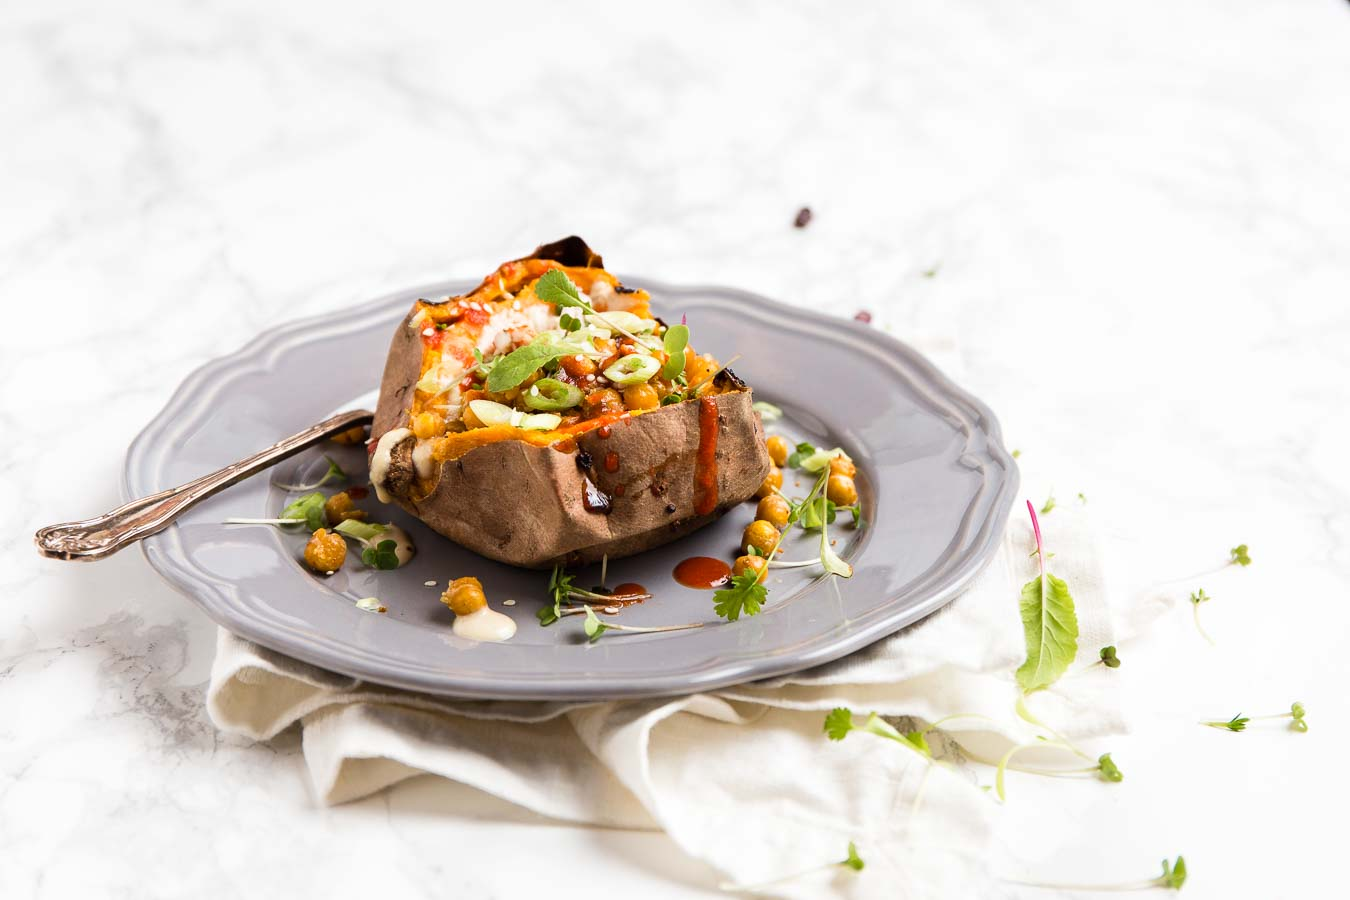 A sliced open baked sweet potato with a chick pea and spring onion tomato topping, on a grey plate with green micro herbs, a white linen textile and white marble table top